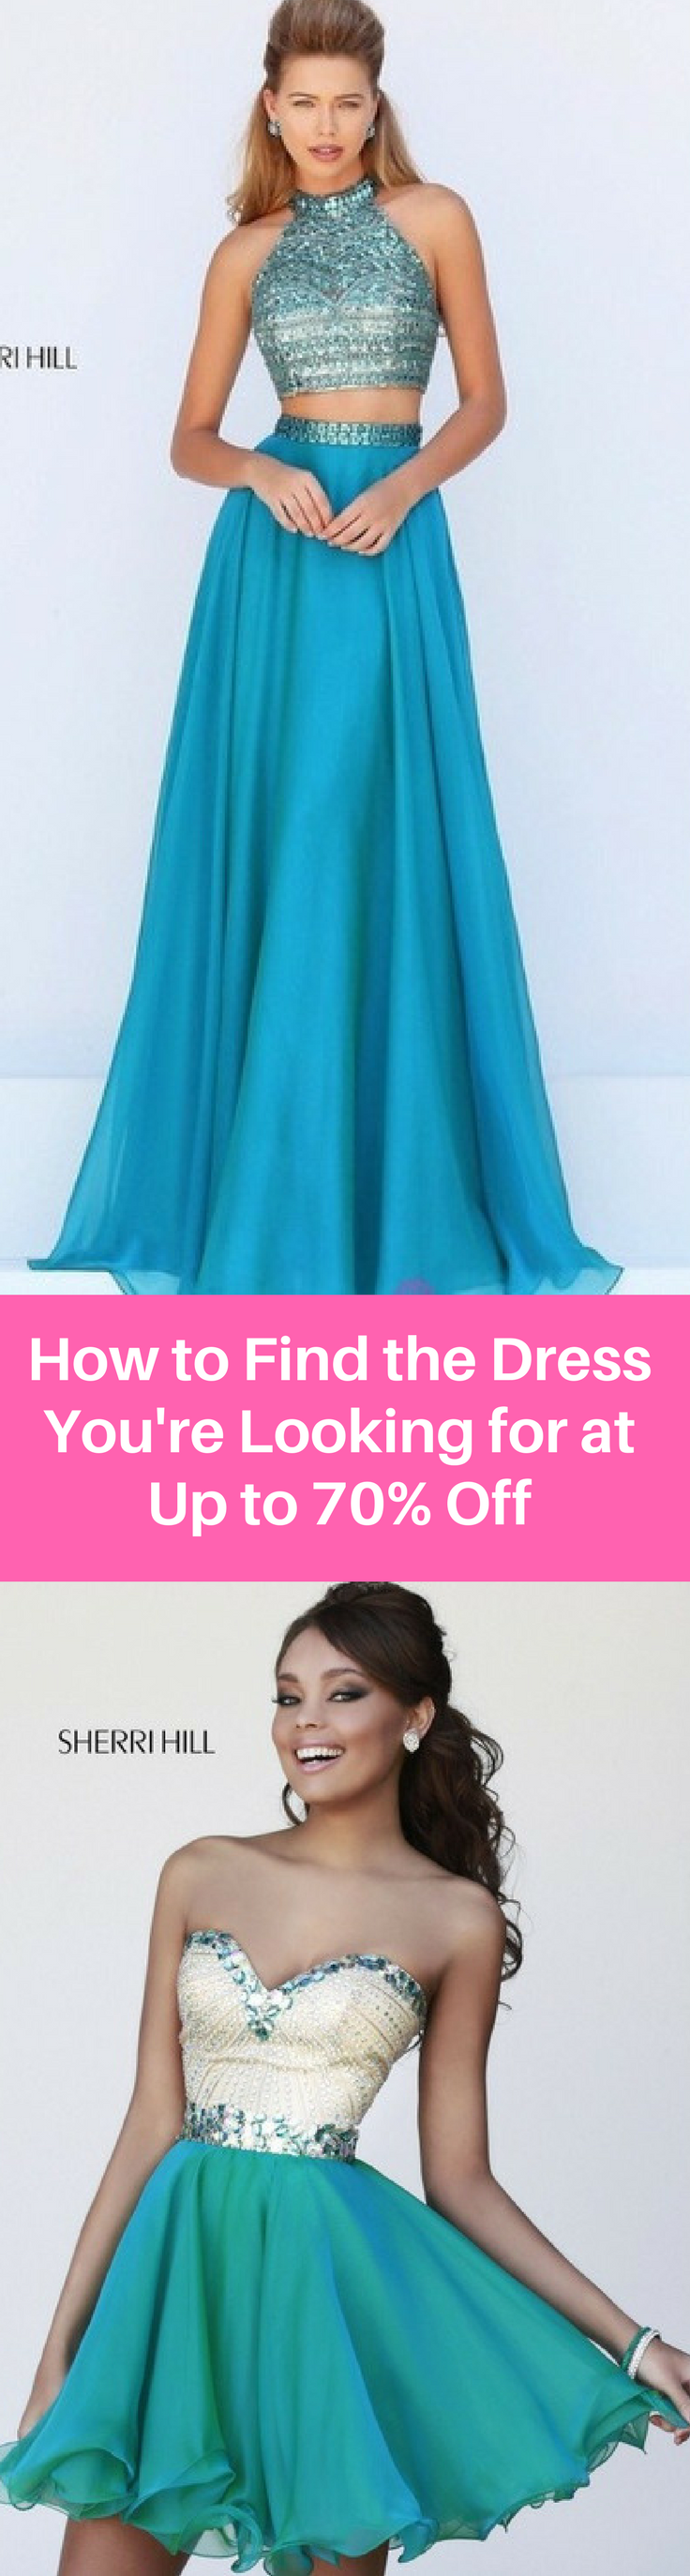 SALE happening now! Buy your Prom Dresses at Up to 70-80% off! Click image to install the FREE app now. As featured in Cosmopolitan & Good Morning America.